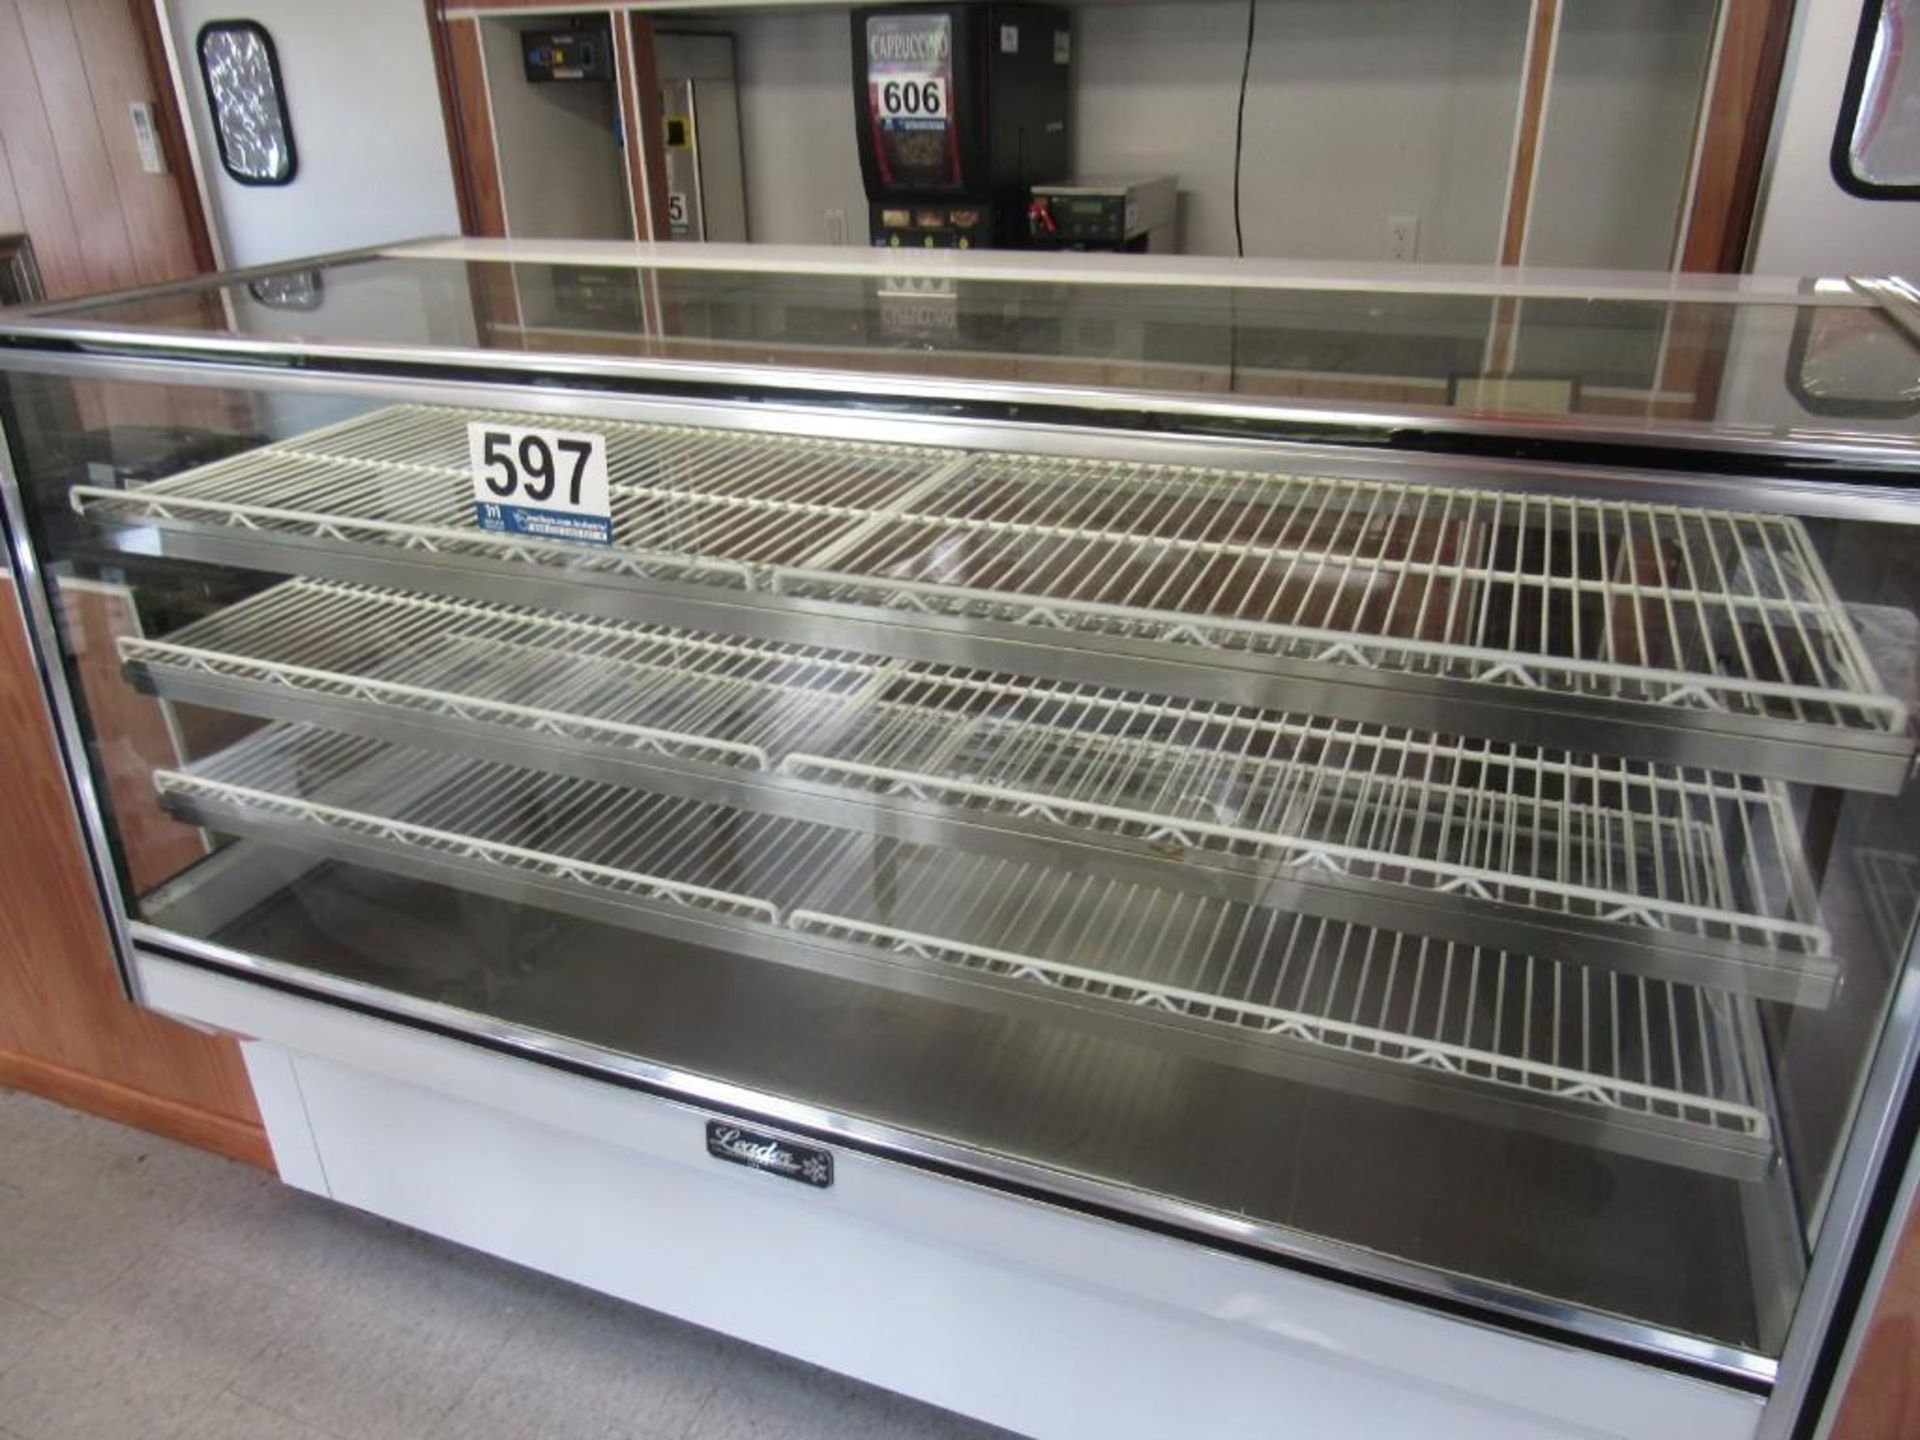 2018 LEADER MANUFACTURING DISPLAY CABINET - Image 3 of 4